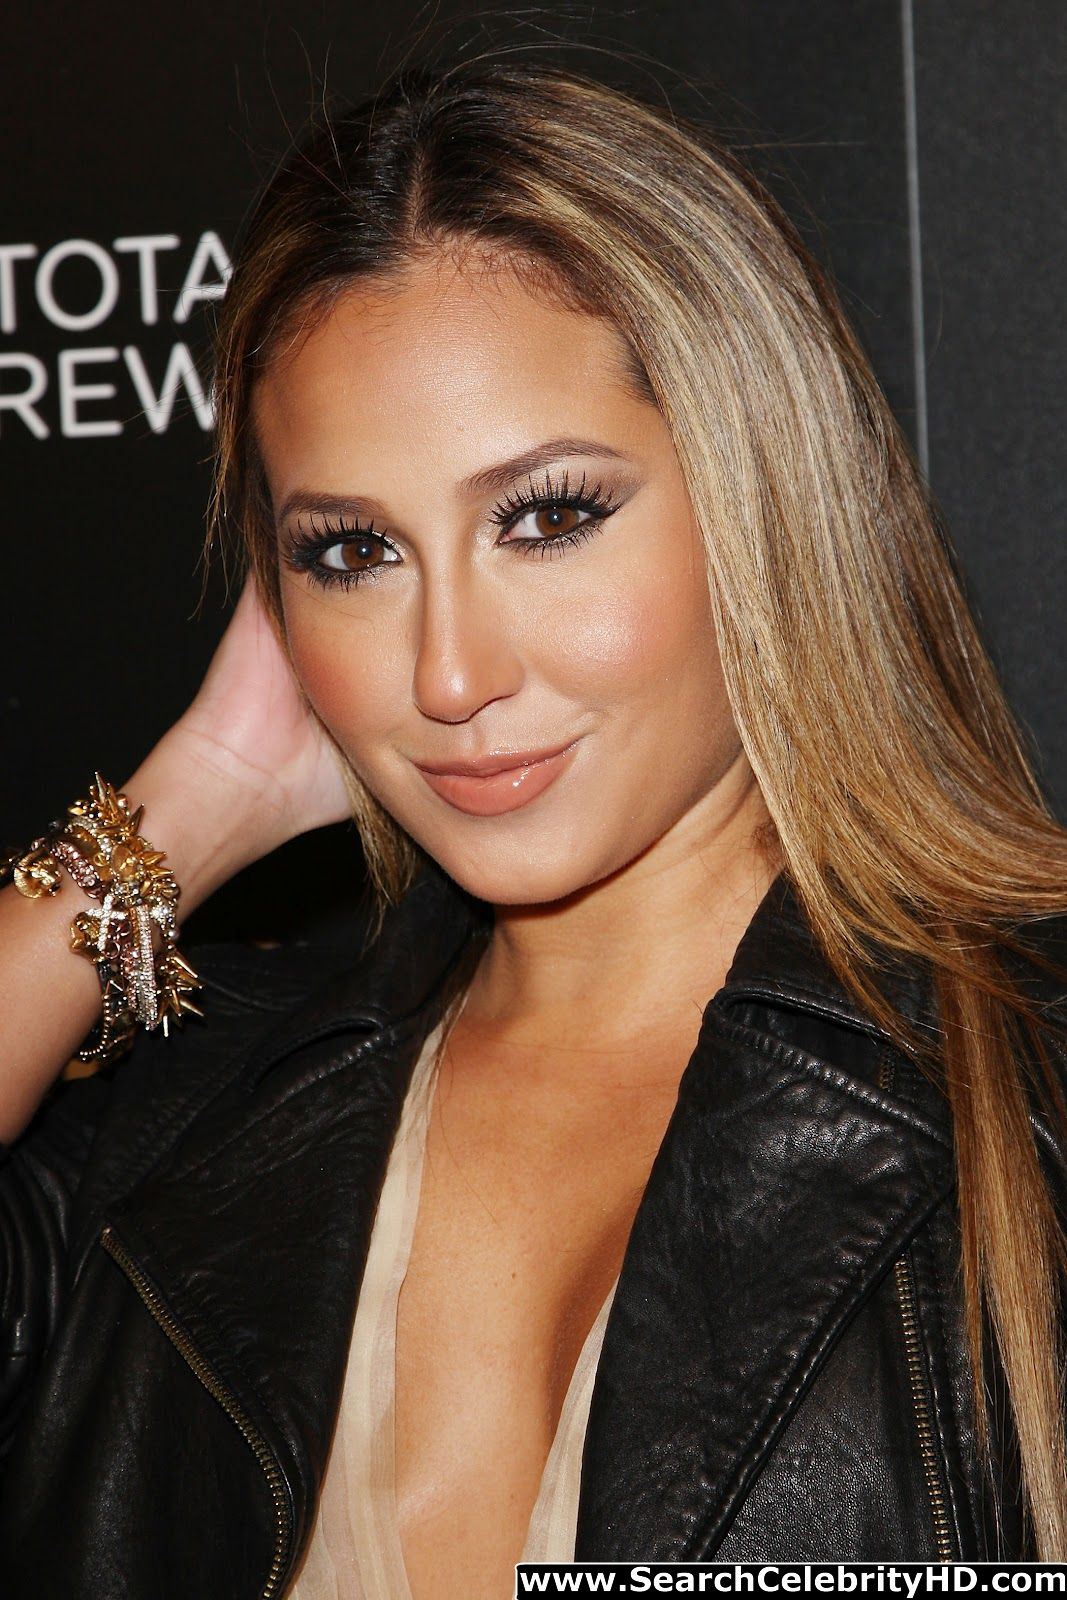 See Celebrities Wearing Her: Fresh Celebrity Pics: Adrienne Bailon Flashing The See